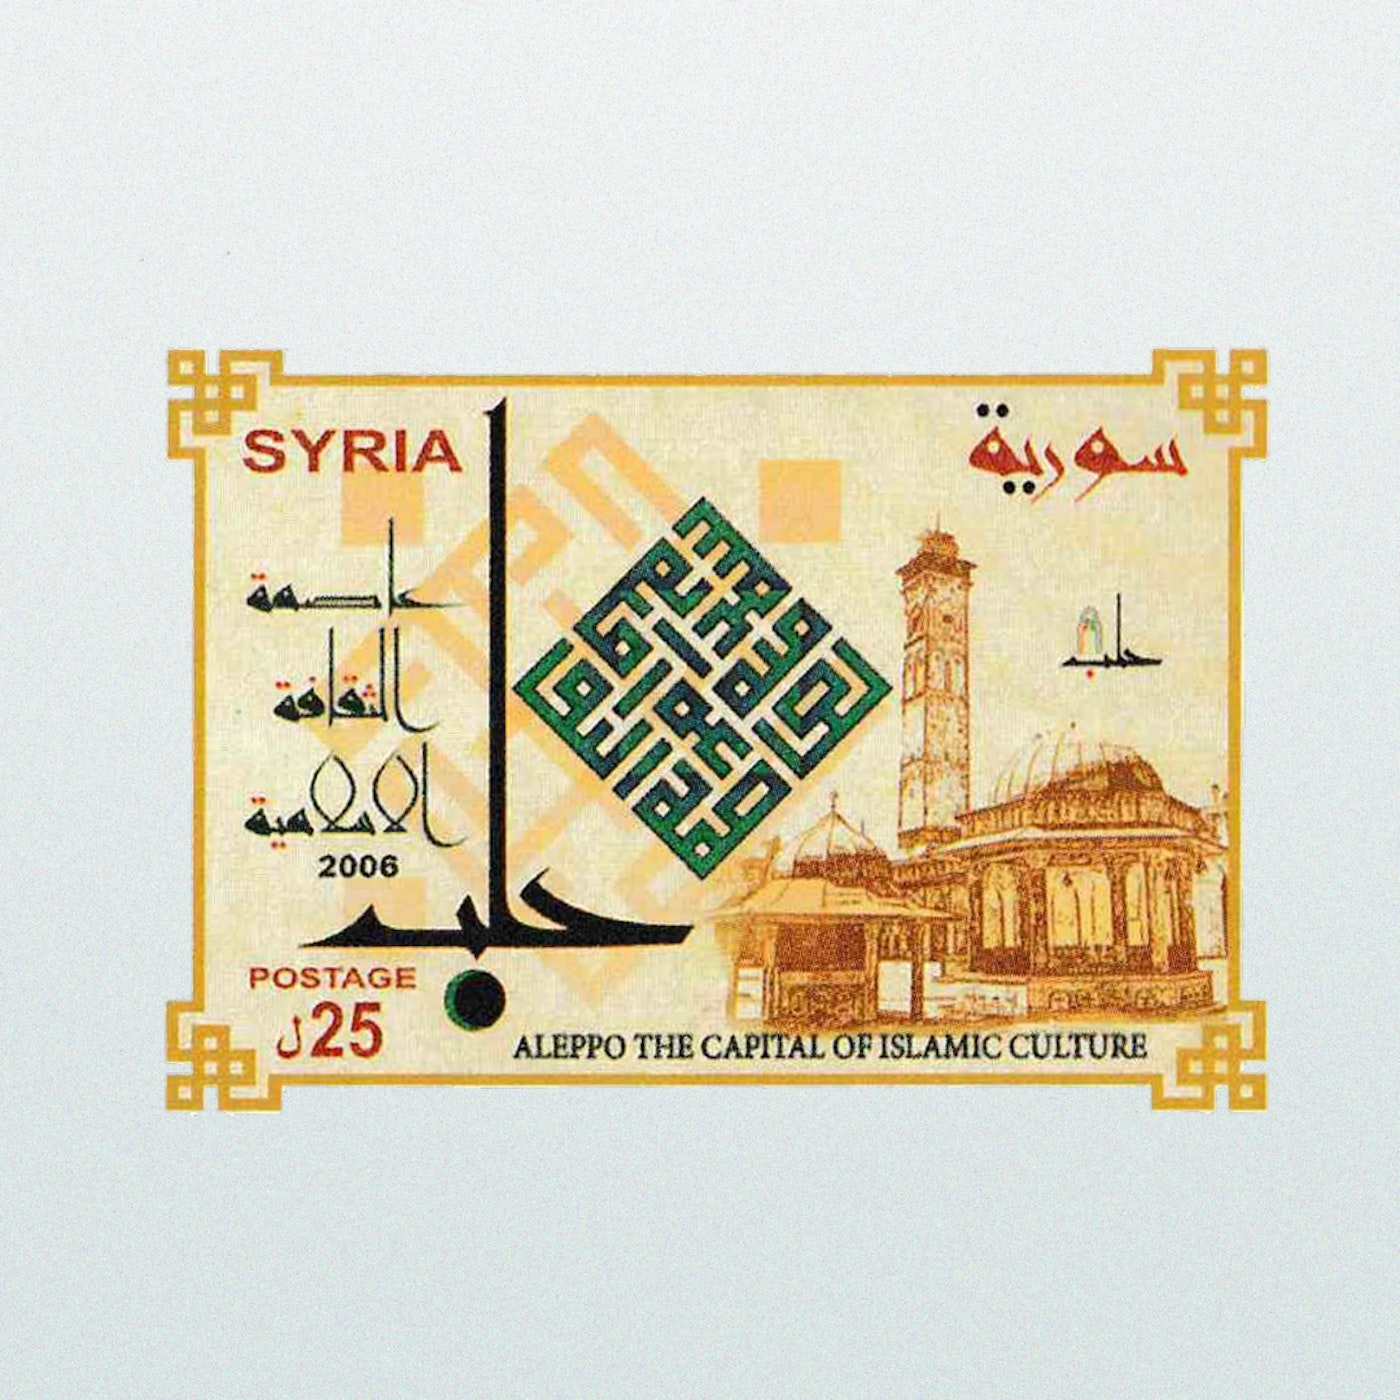 Picture showing a syrian stamp depicting a mosque in aleppo